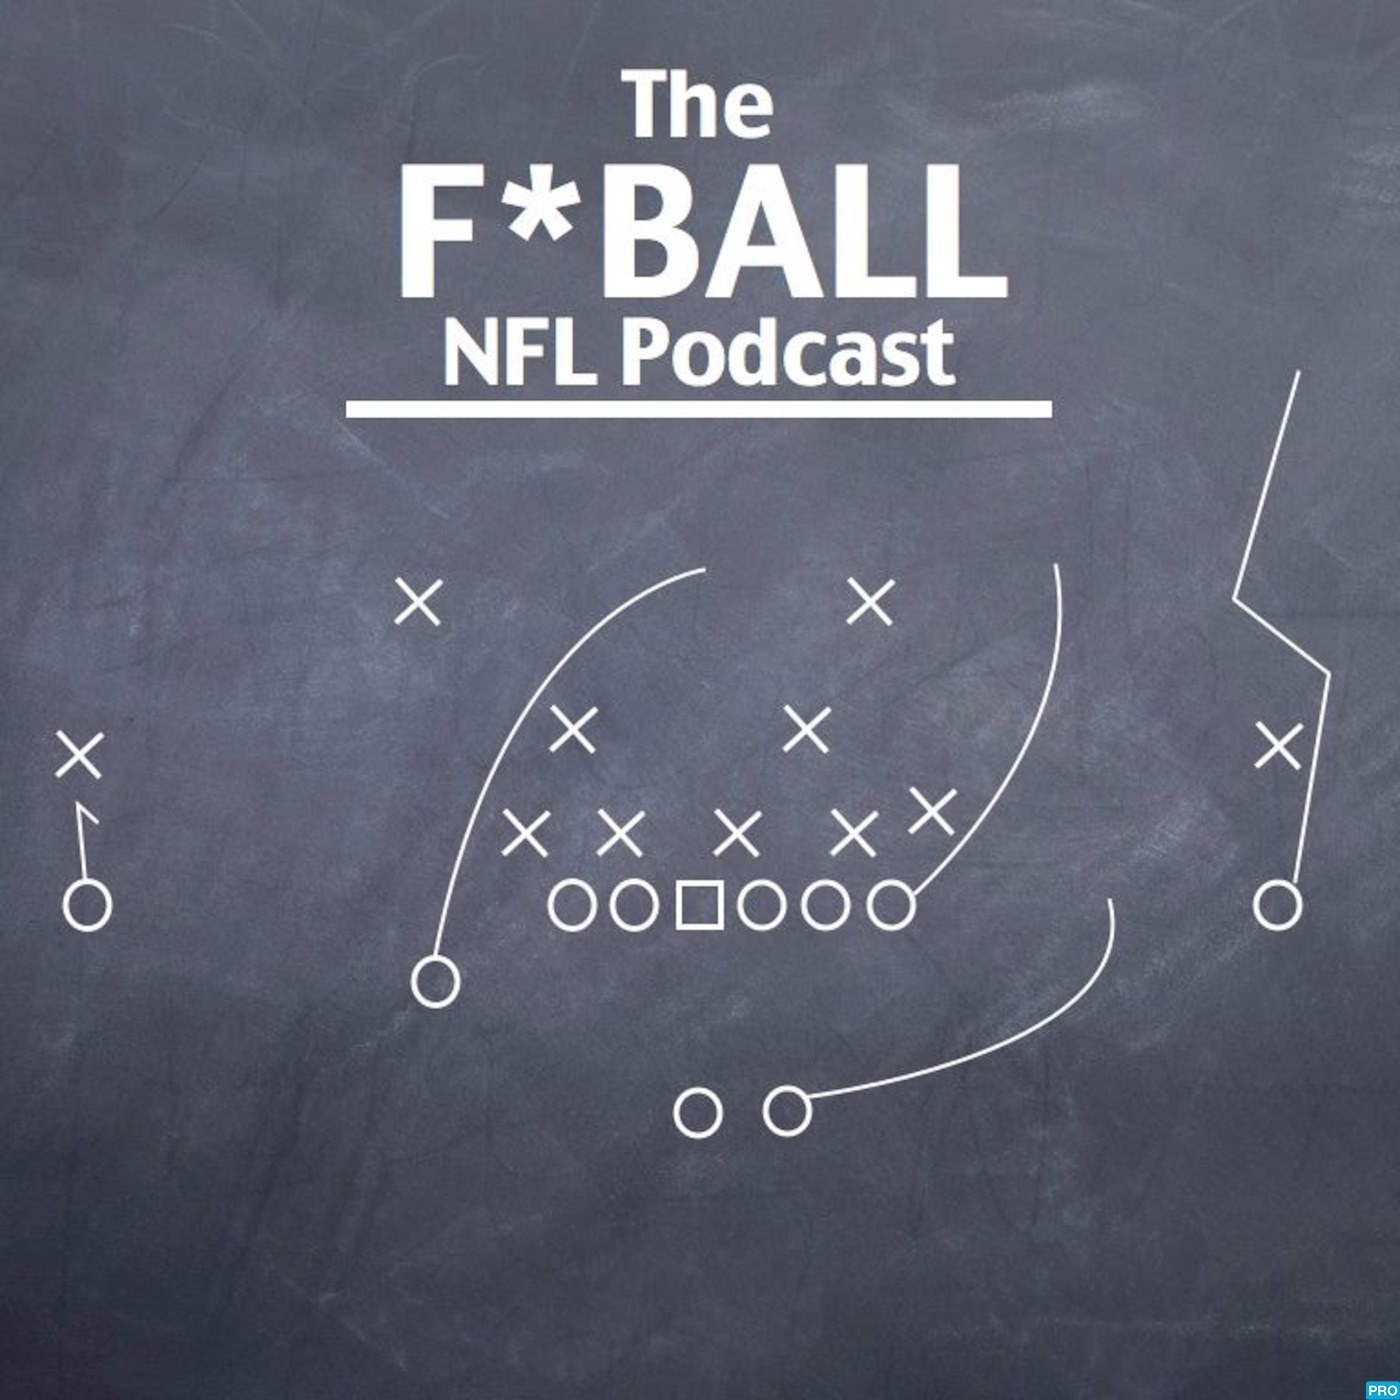 The F*BALL NFL Podcast